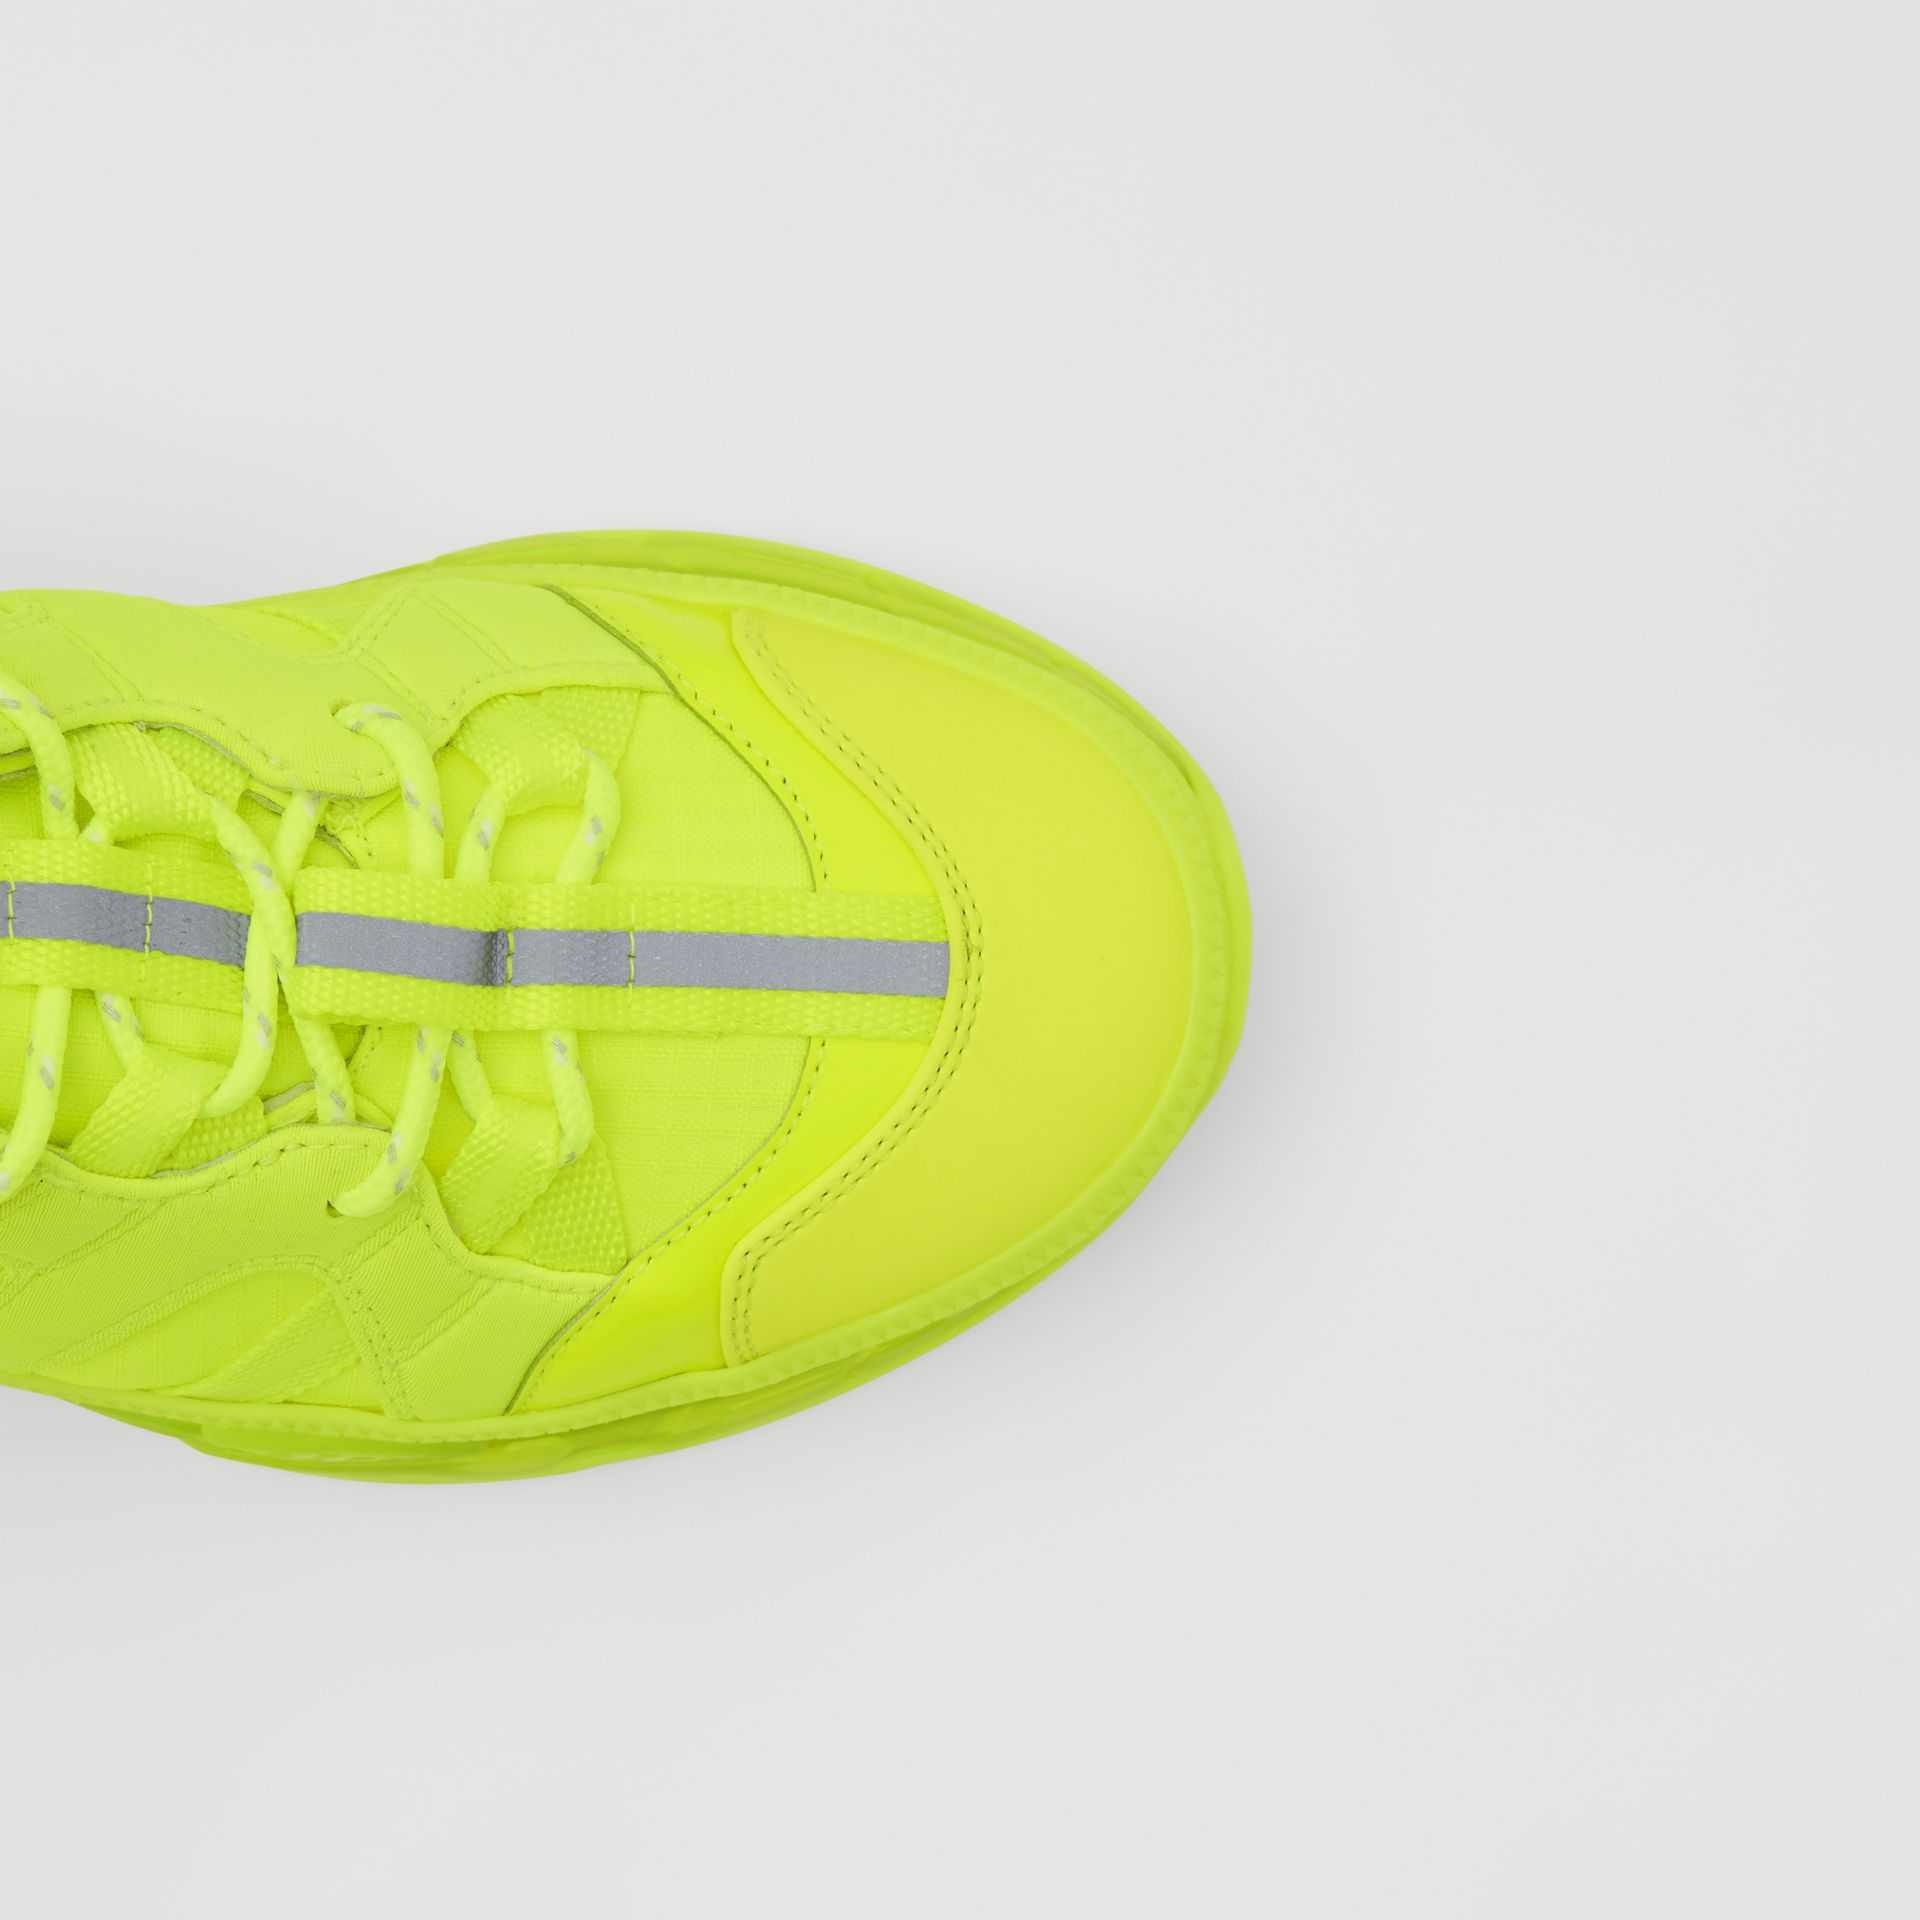 Nylon and Cotton Union Sneakers in Fluorescent Yellow - Women | Burberry United Kingdom - gallery image 1